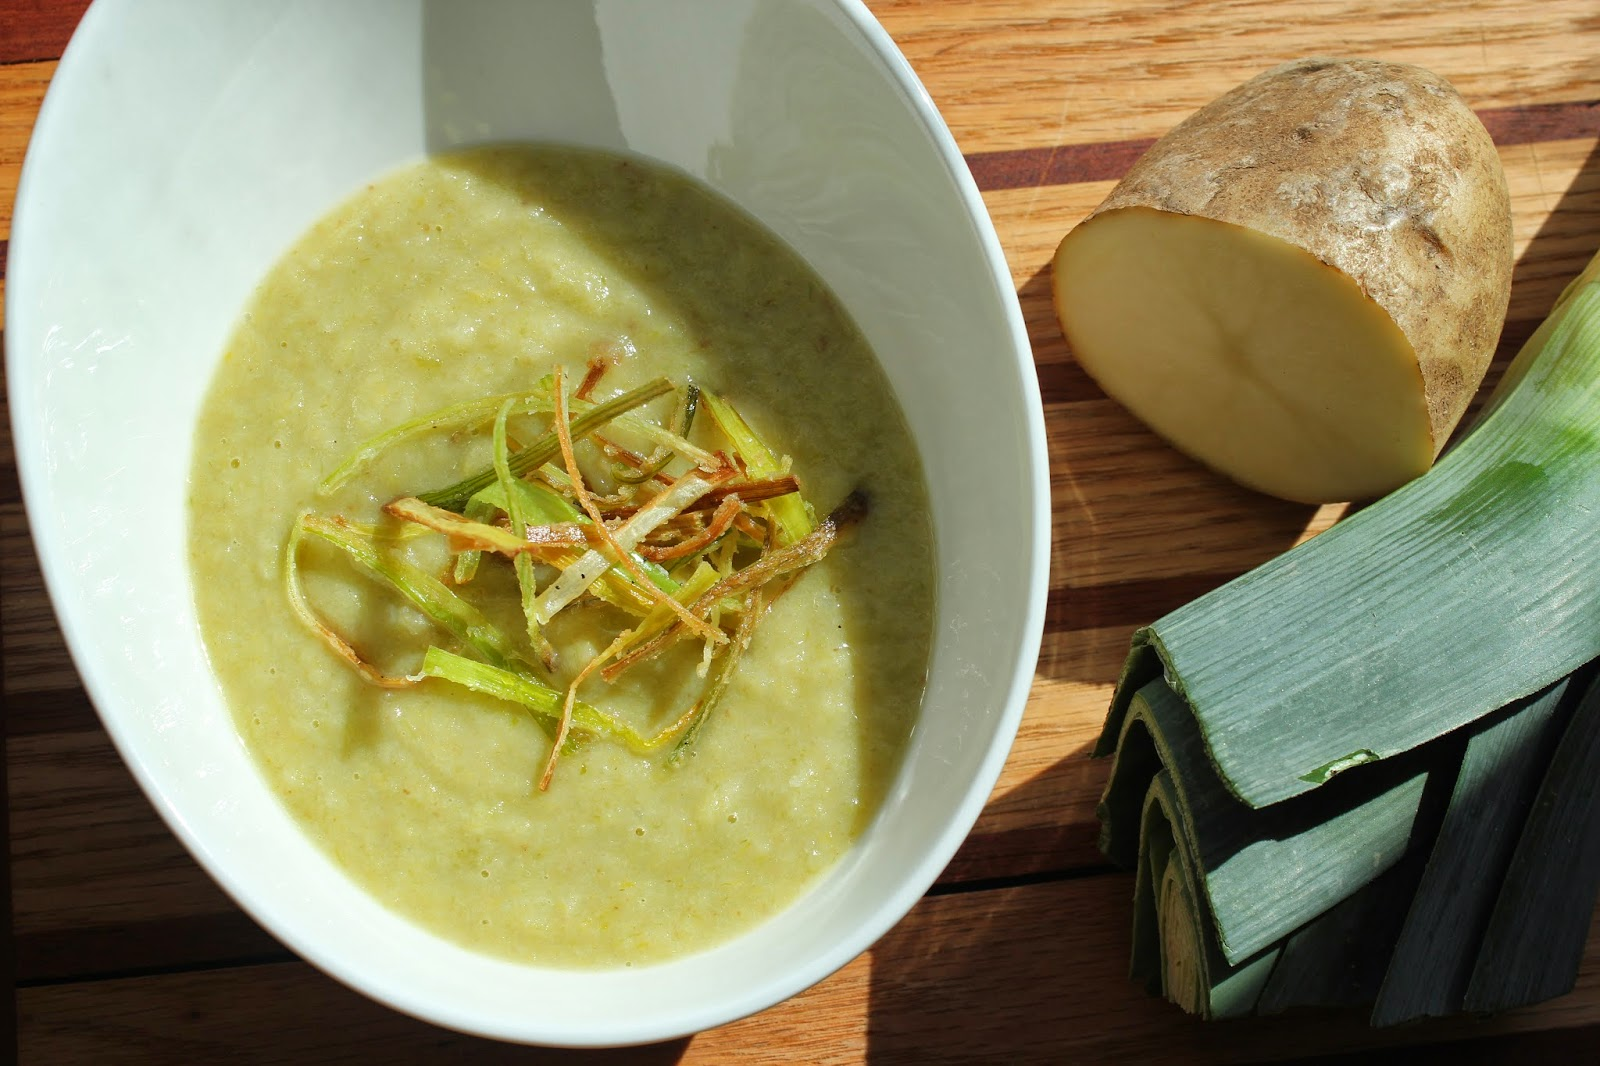 Potato-leek soup